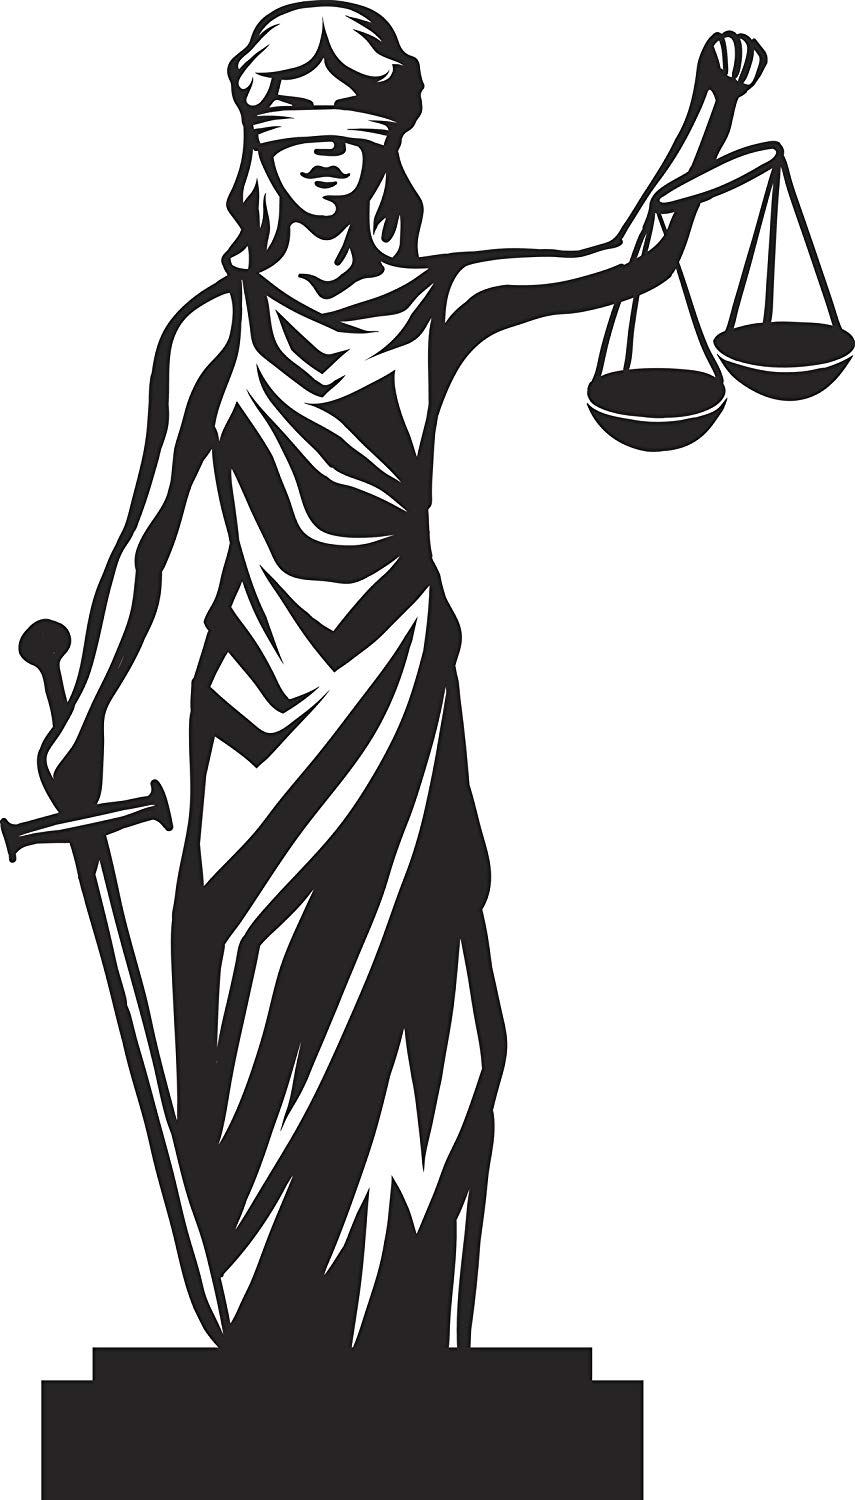 35+ Lawyer Clipart Black And White